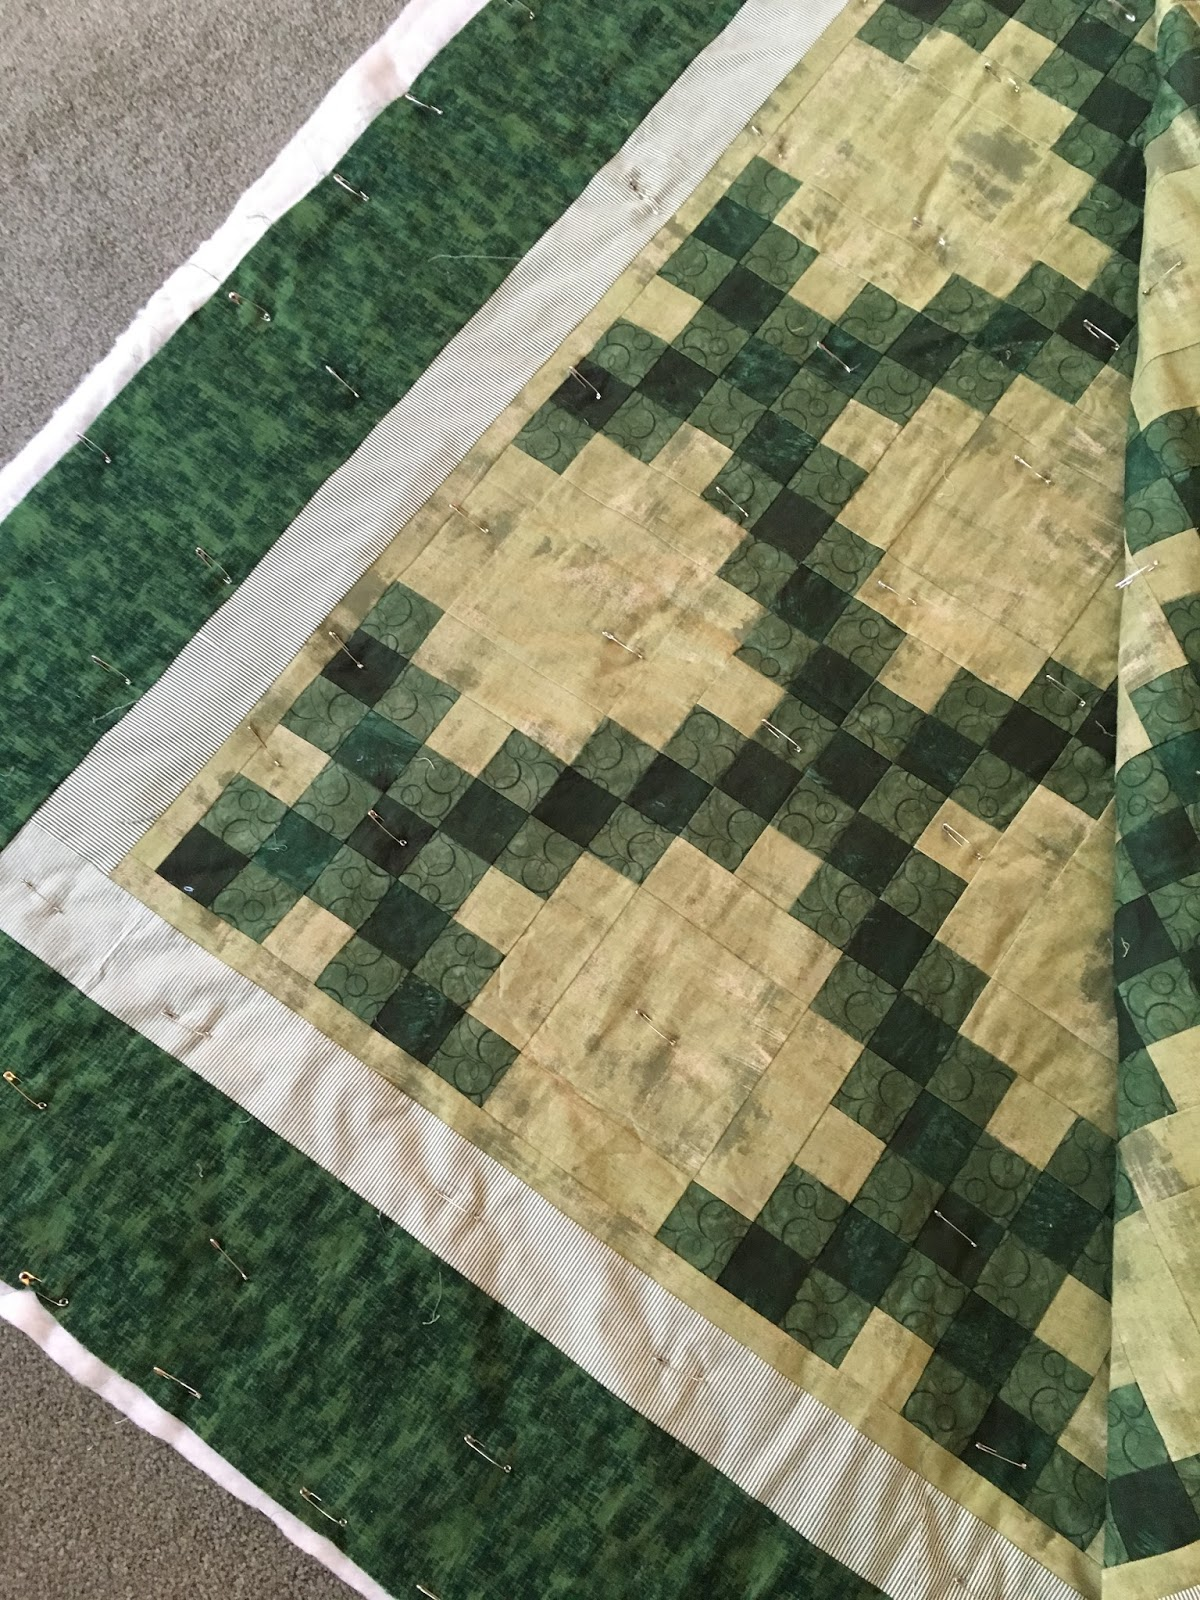 frayed edge: the hand quilting frame-up